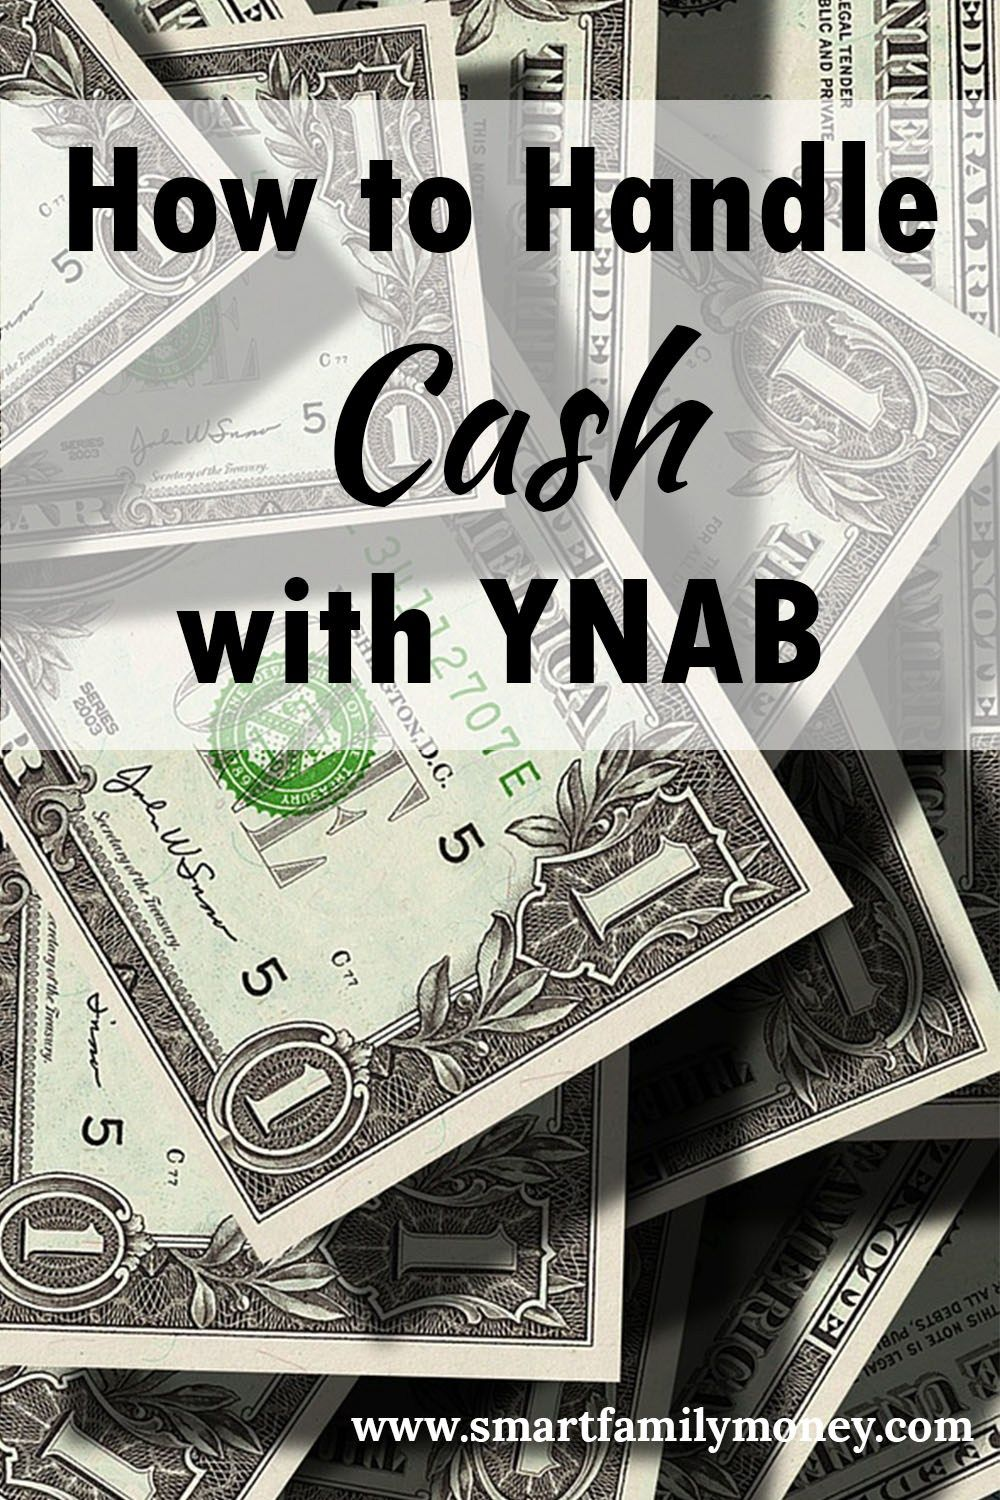 How to Handle Cash with YNAB   BEST OF SMART FAMILY MONEY